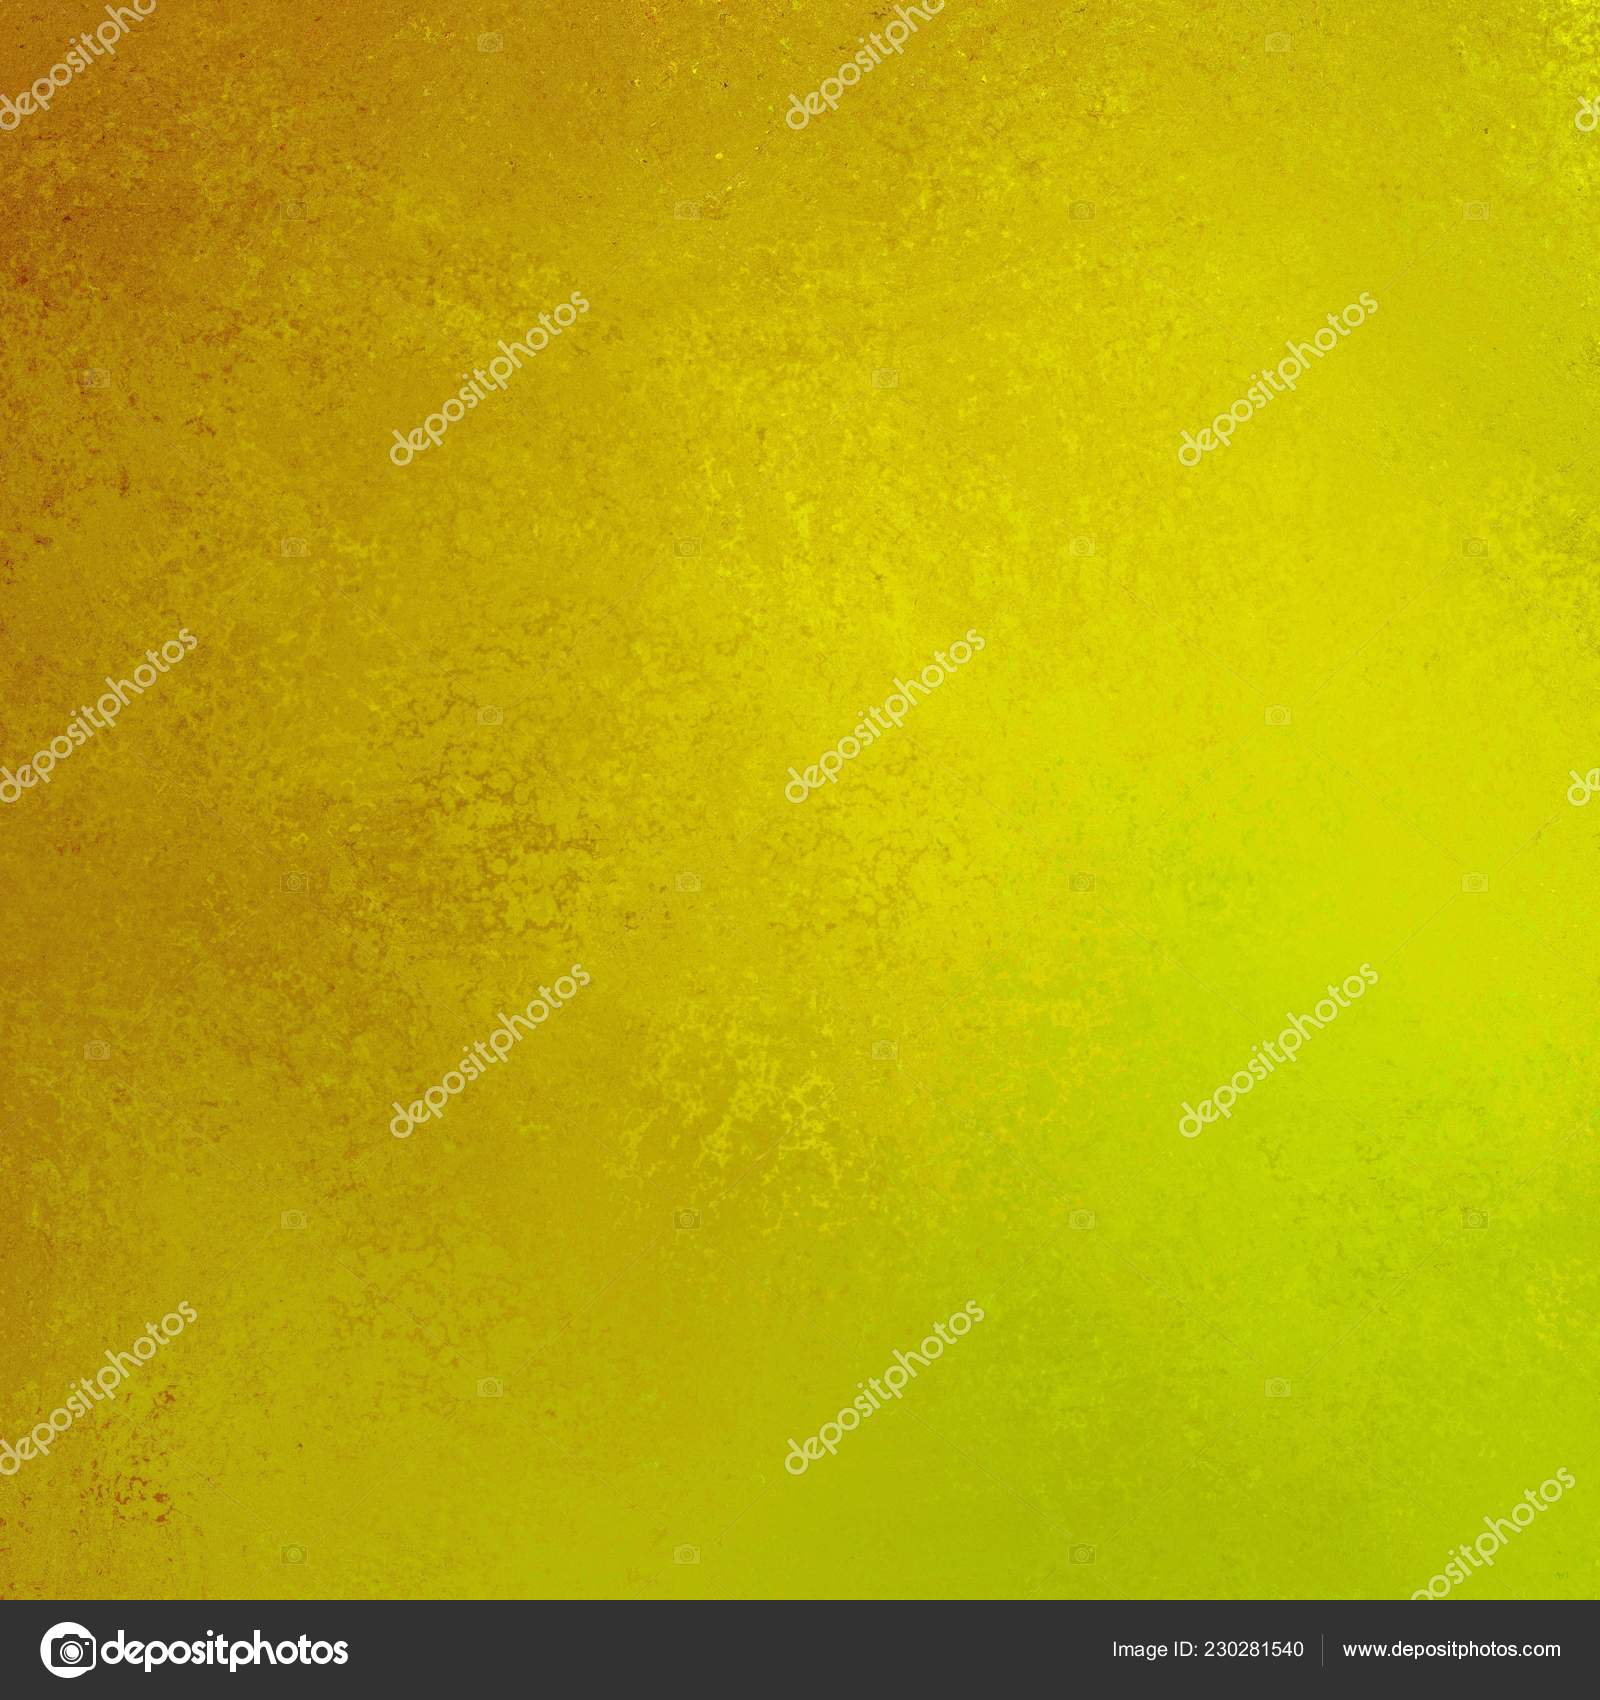 Wall Design Yellow Background